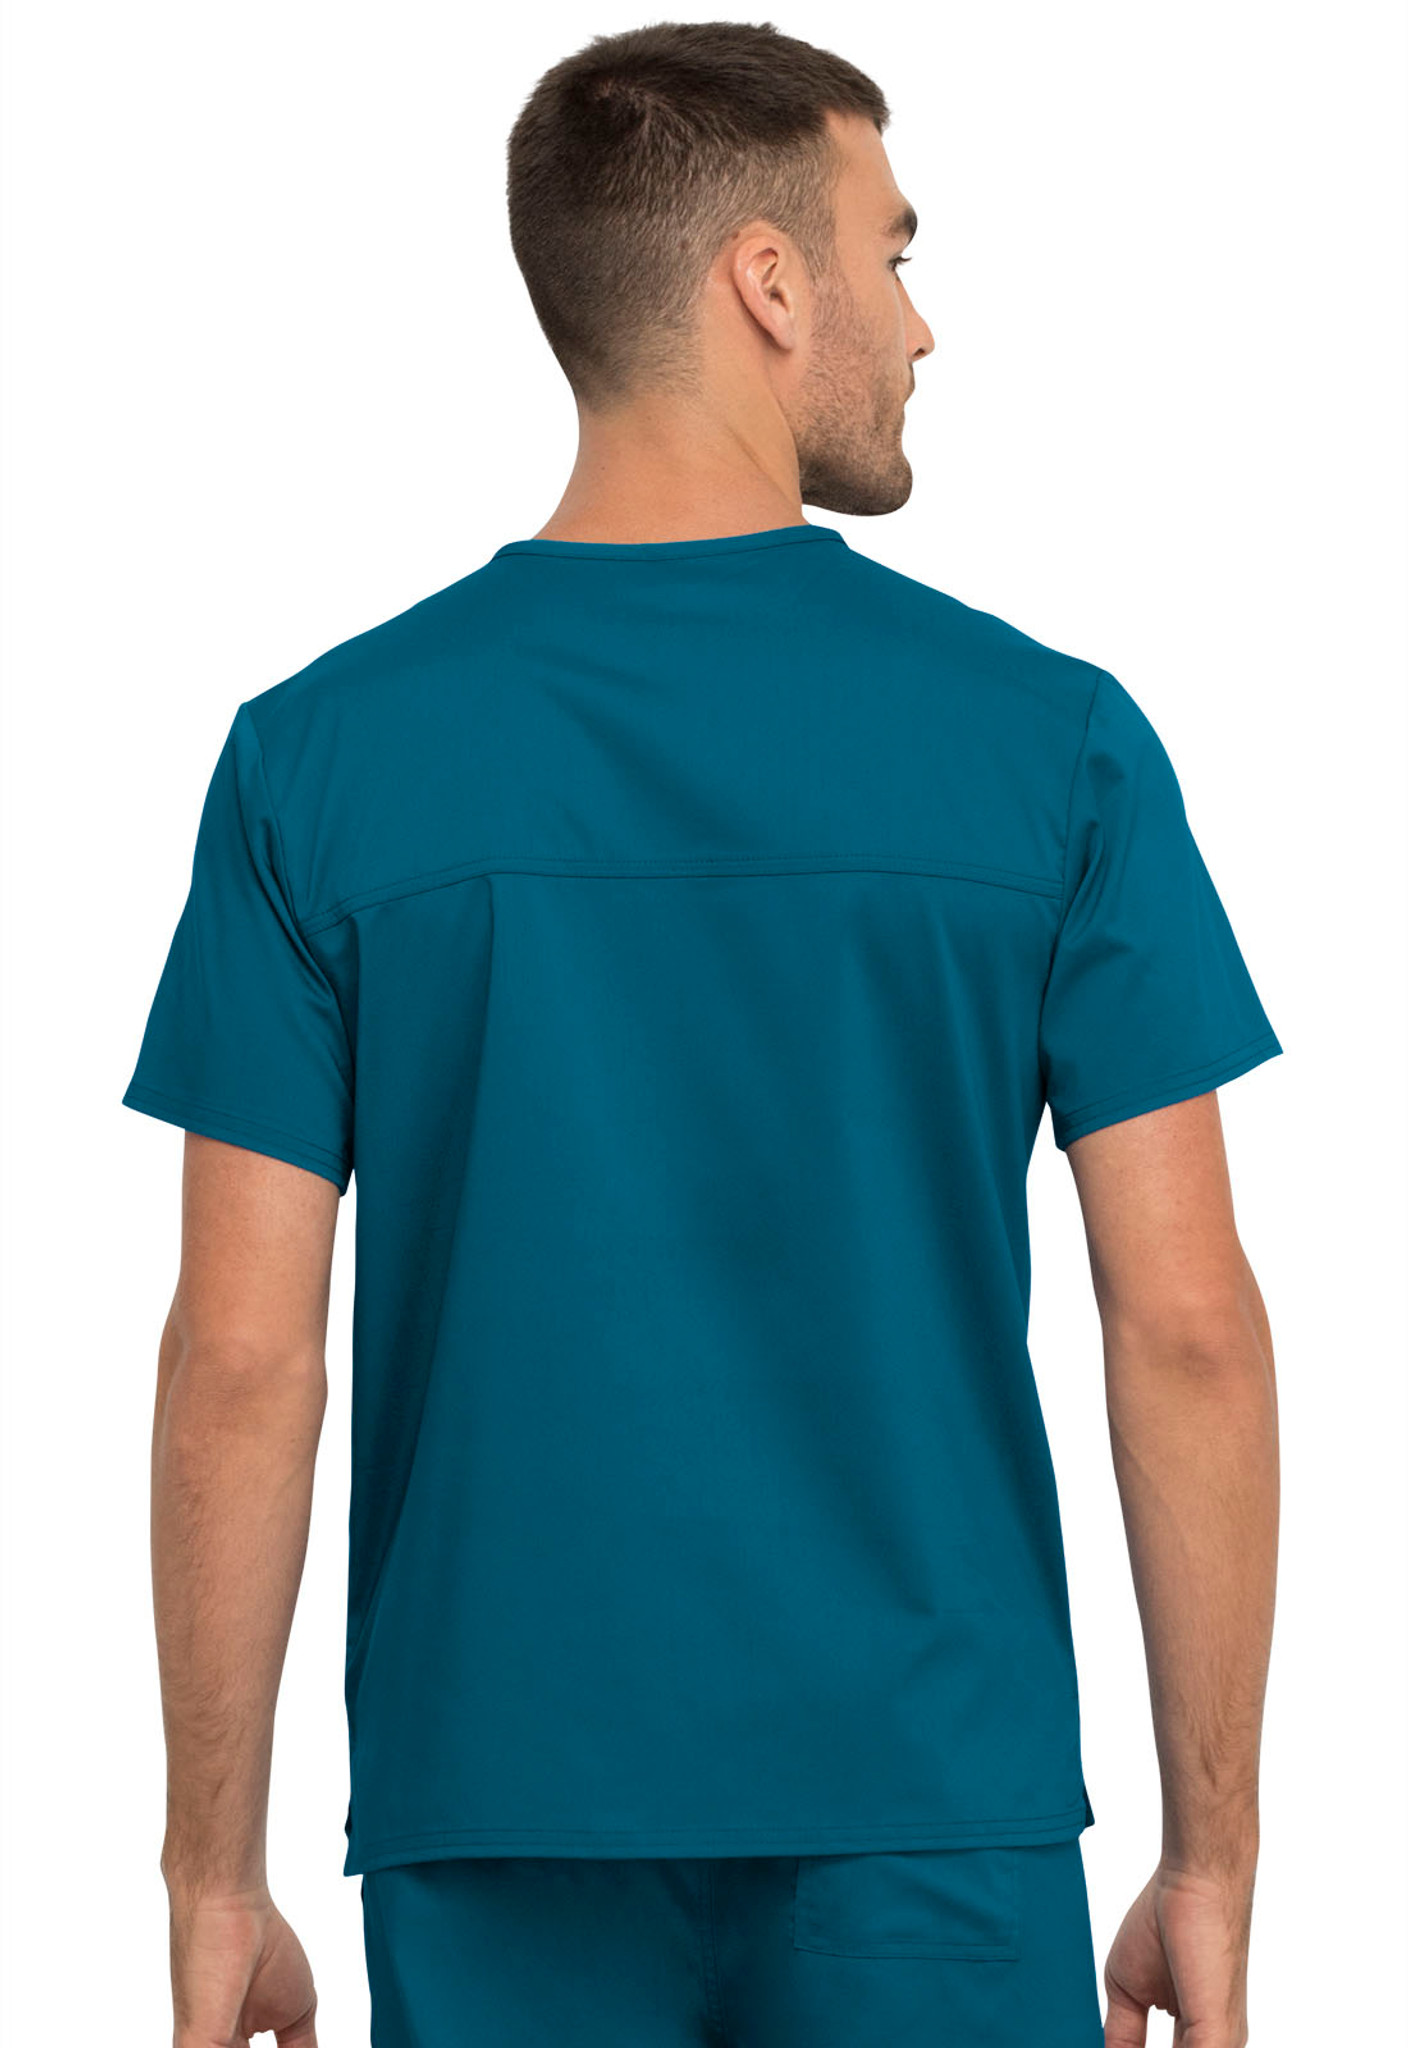 Workwear Revolution WW625 Unisex Unisex 1 Pocket V-Neck Top by Cherokee